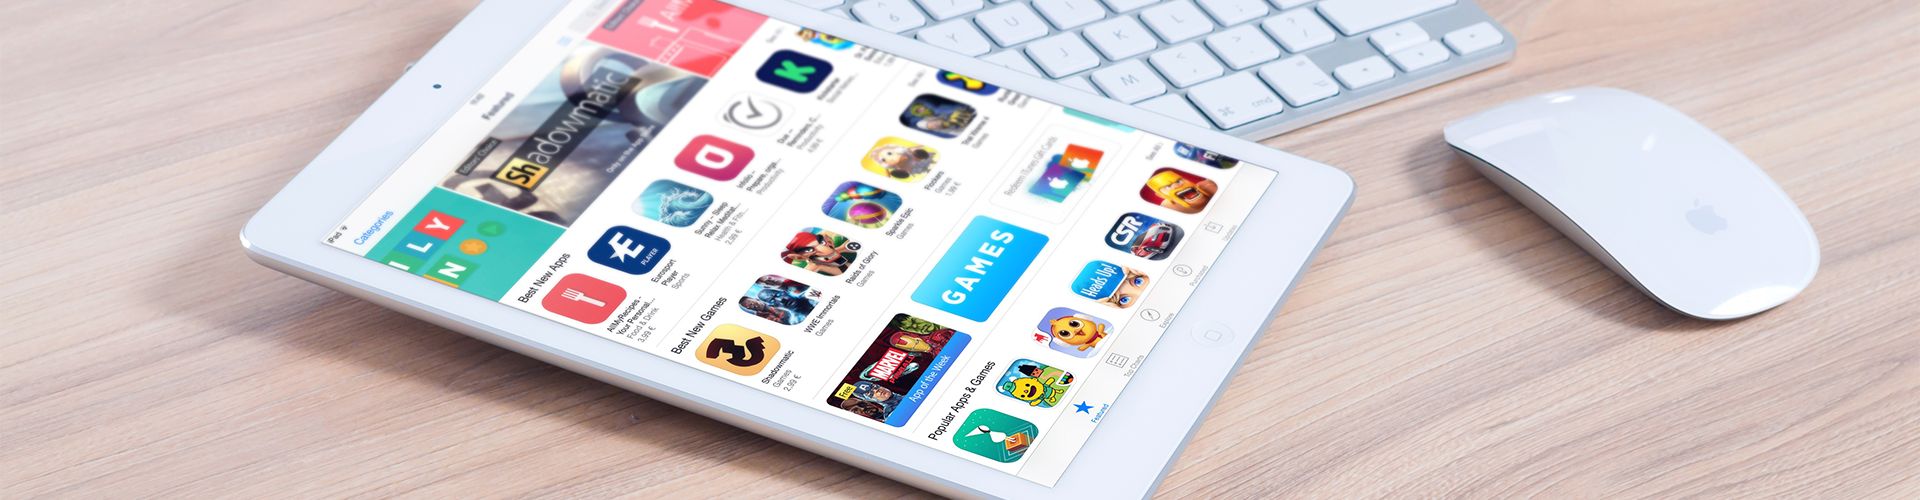 Top 10 Apple Apps